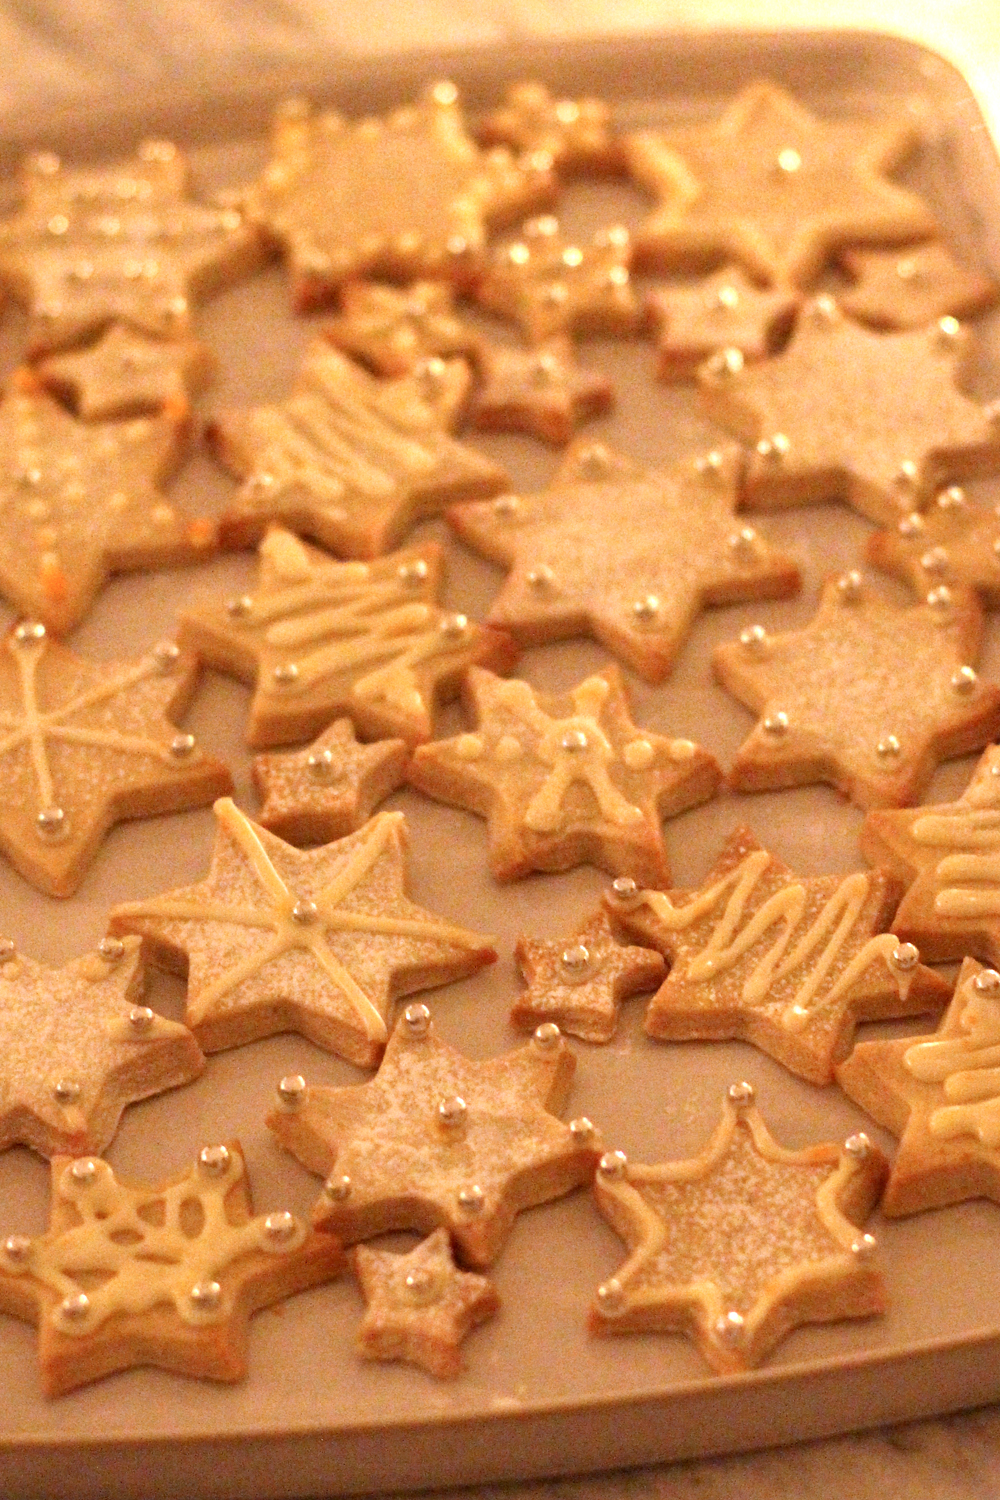 Iced Christmas biscuits - London lifestyle blog